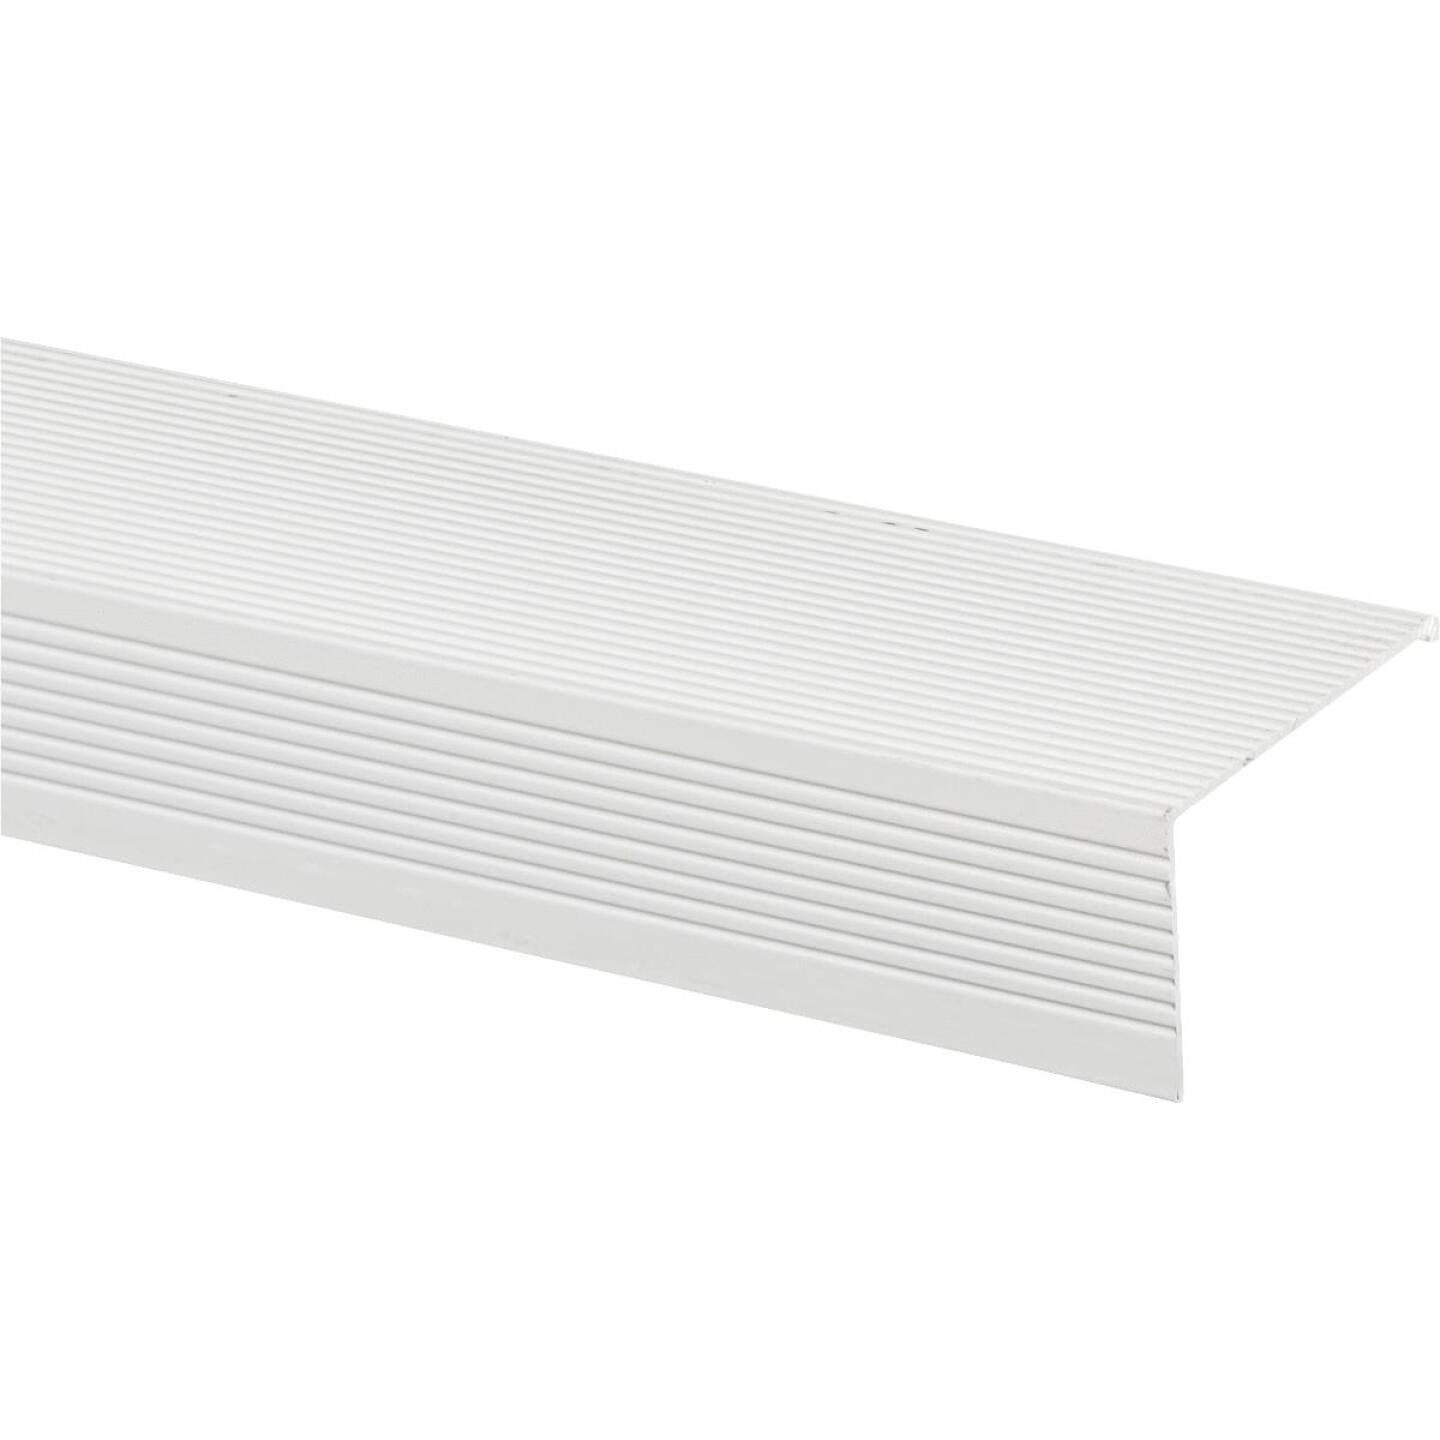 "M-D Ultra White 36"" x  2-3/4"" Sill Nosing Image 1"